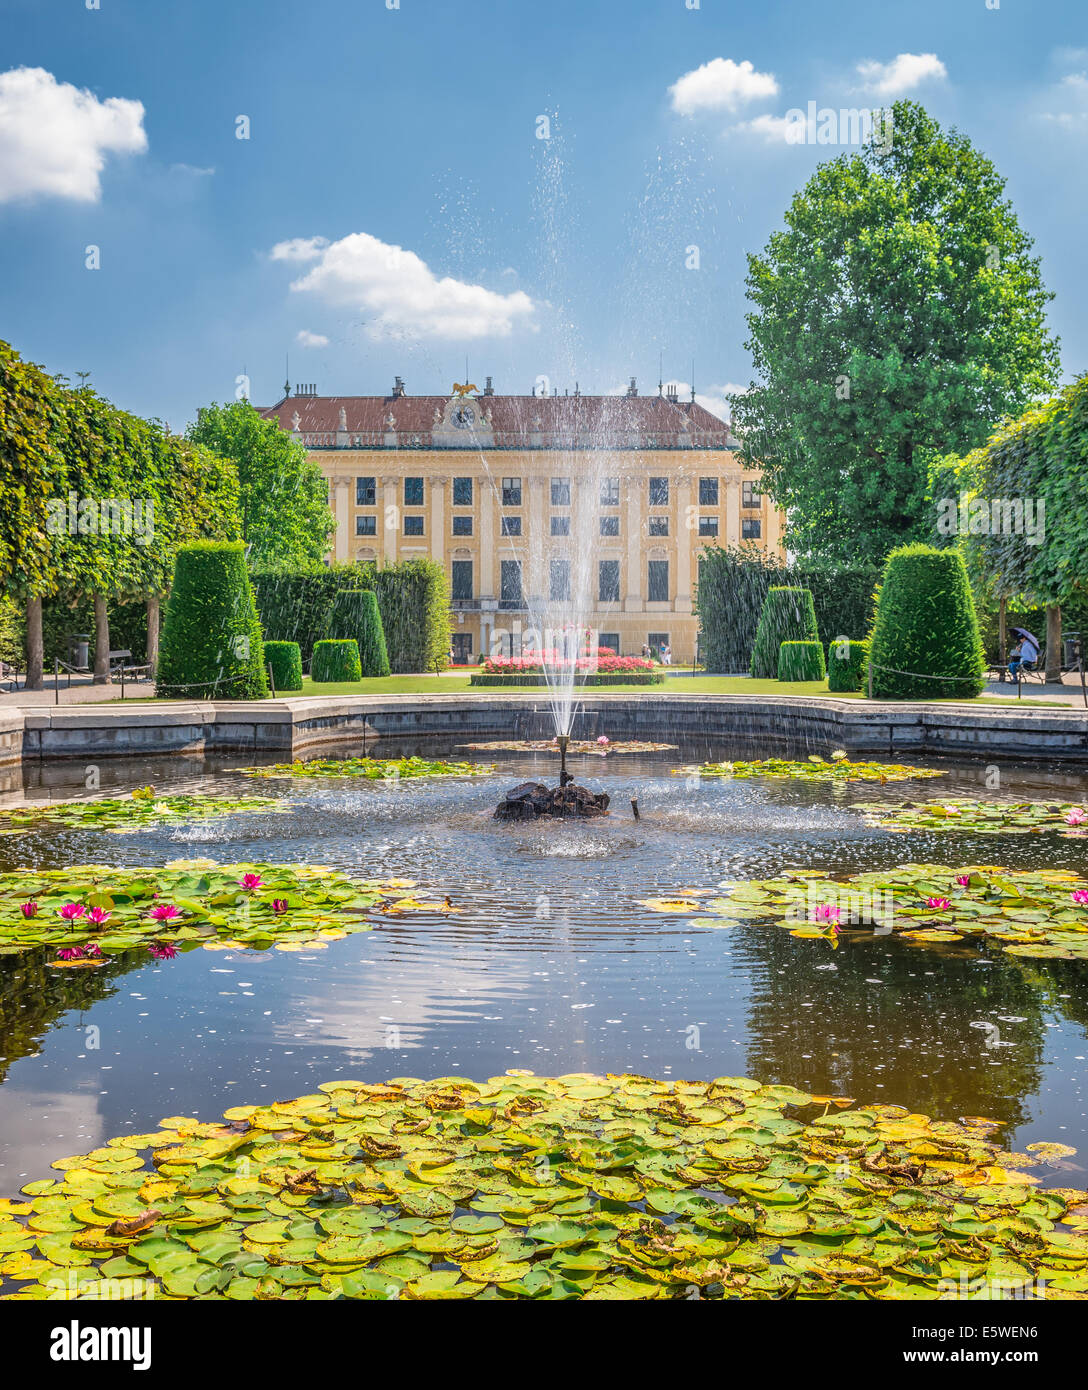 Fountain in the park behind the Schonbrunn  castle in Vienna - Stock Image